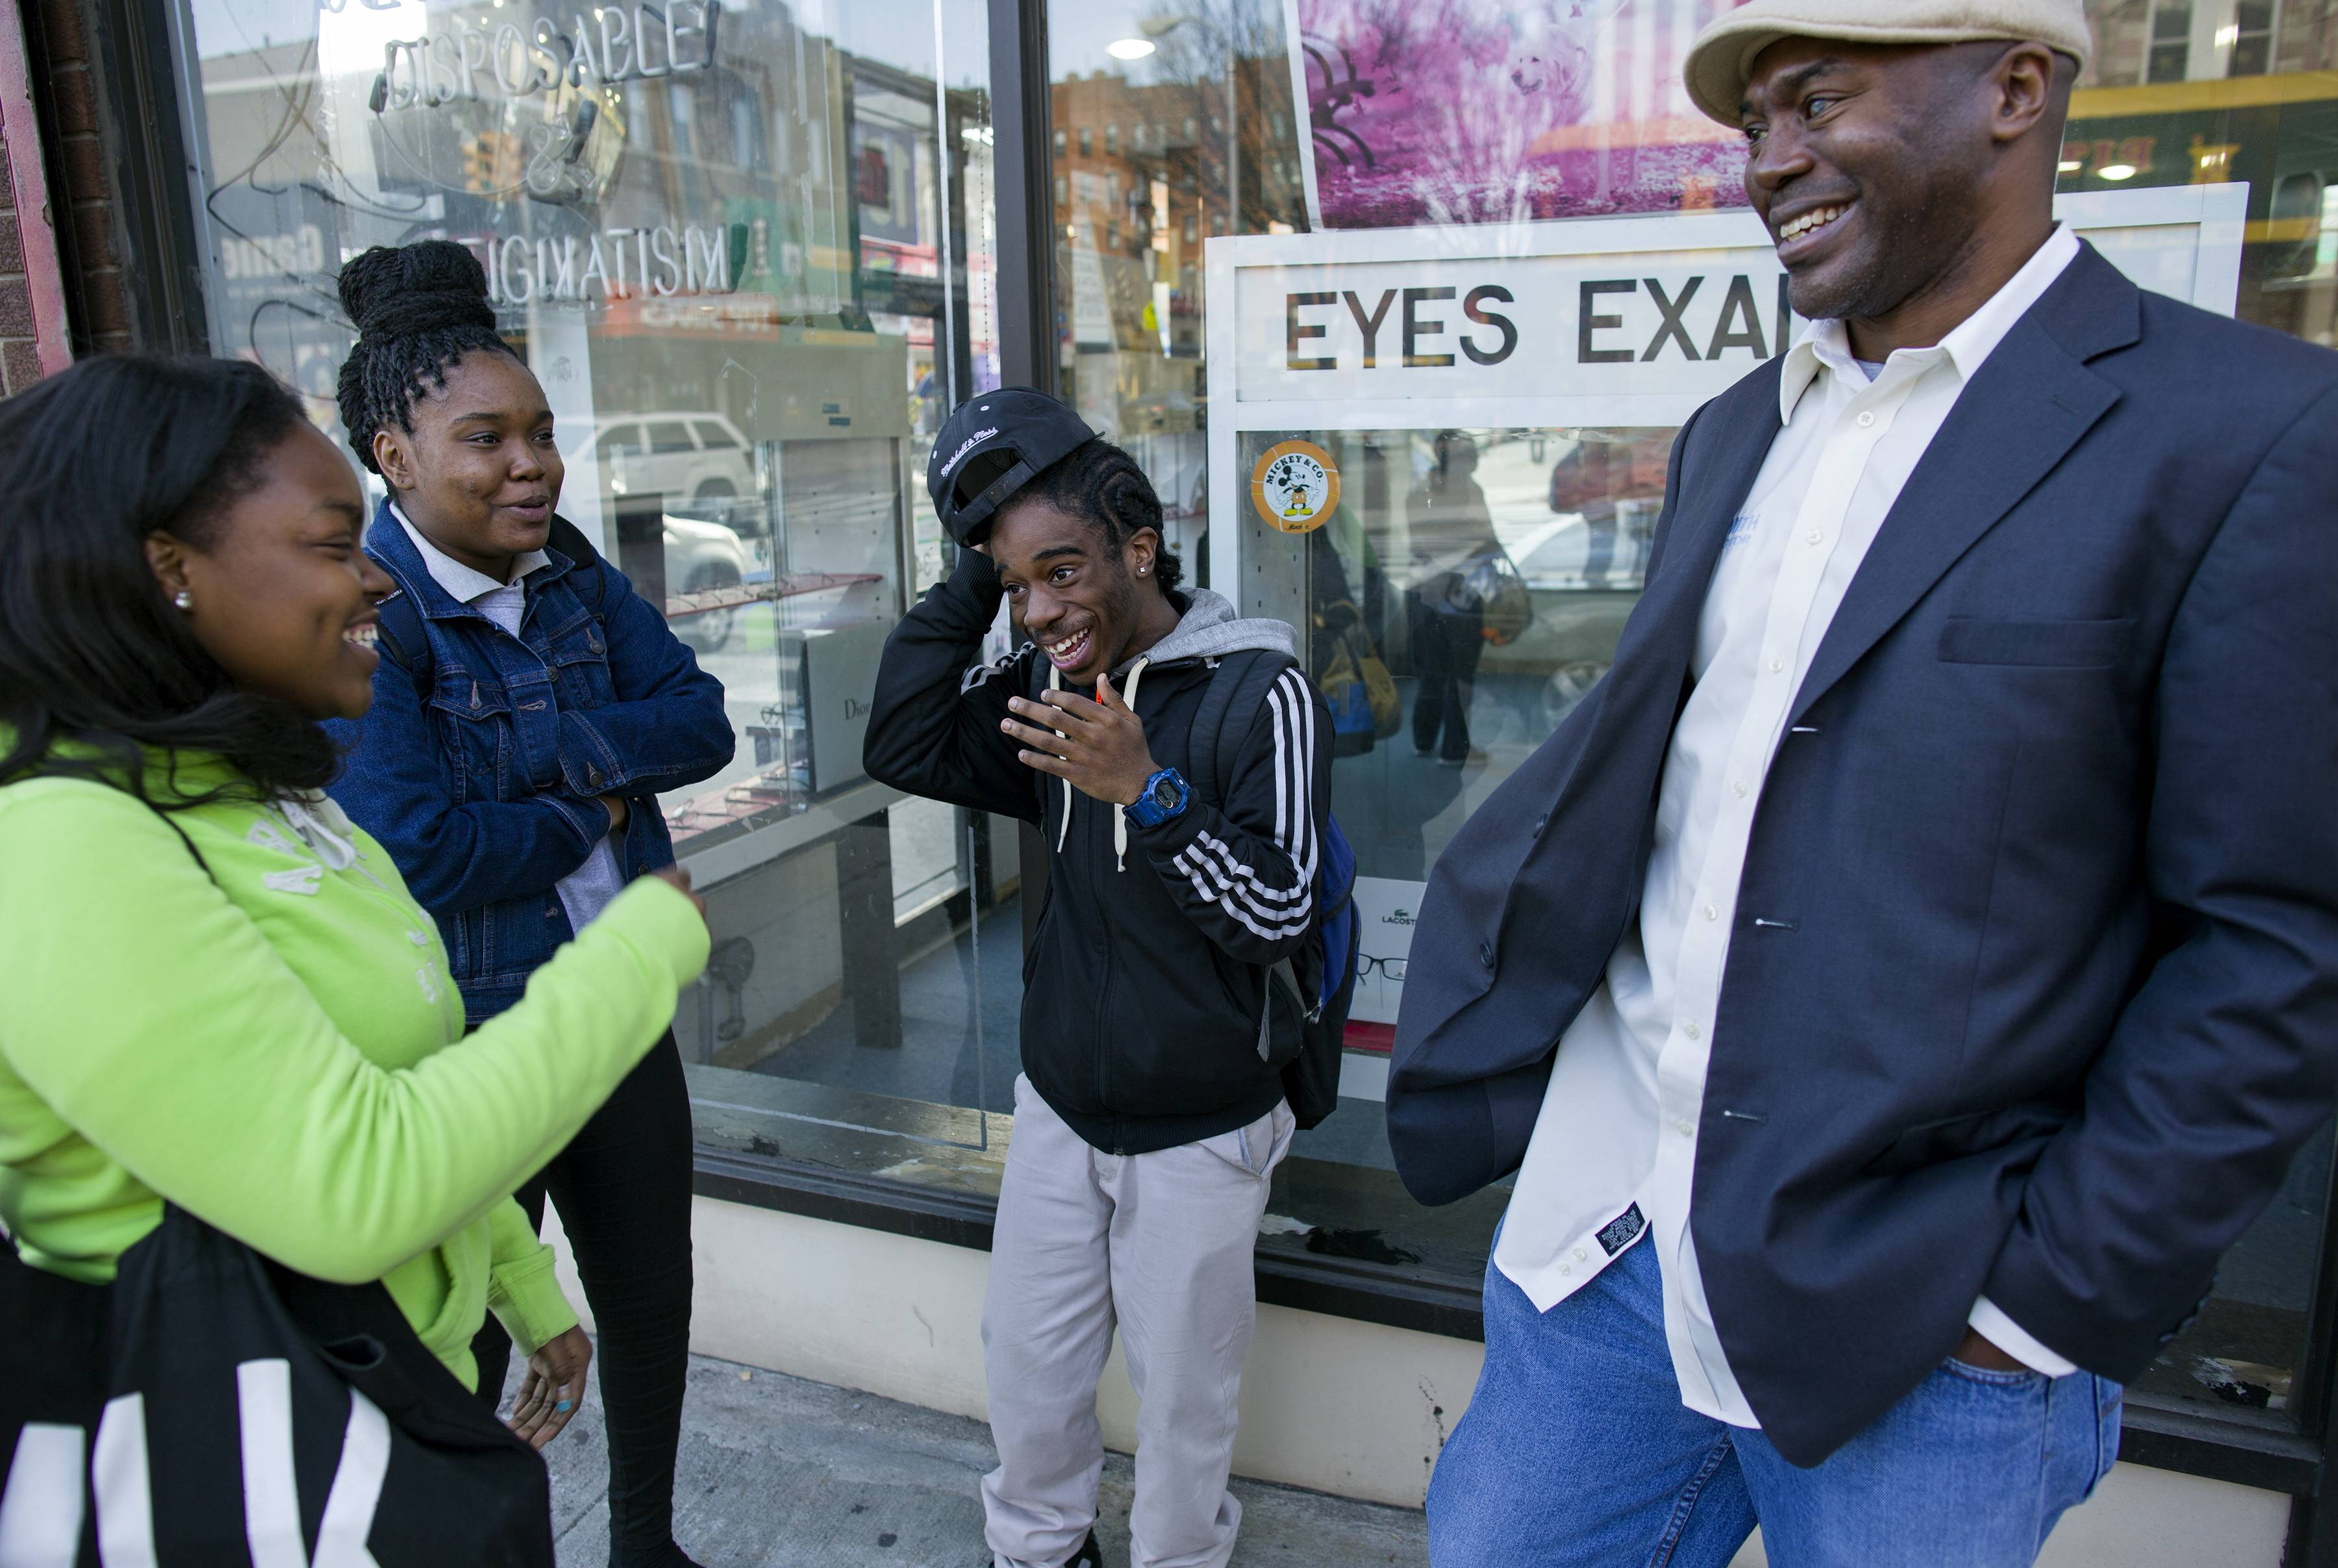 Dr. Kai Smith, right, former gang member and now founder and Executive Director of GRAAFICS (Gang Diversion, reentry and Absent Father Intervention Center), talks with GRAAFICS students (from left) Tyasia Blair, 16, of East New York, Keeozel Saul, 16, and Devon Collins, 16, of East New York, in the Brownsville neighborhood of Brooklyn, N.Y.